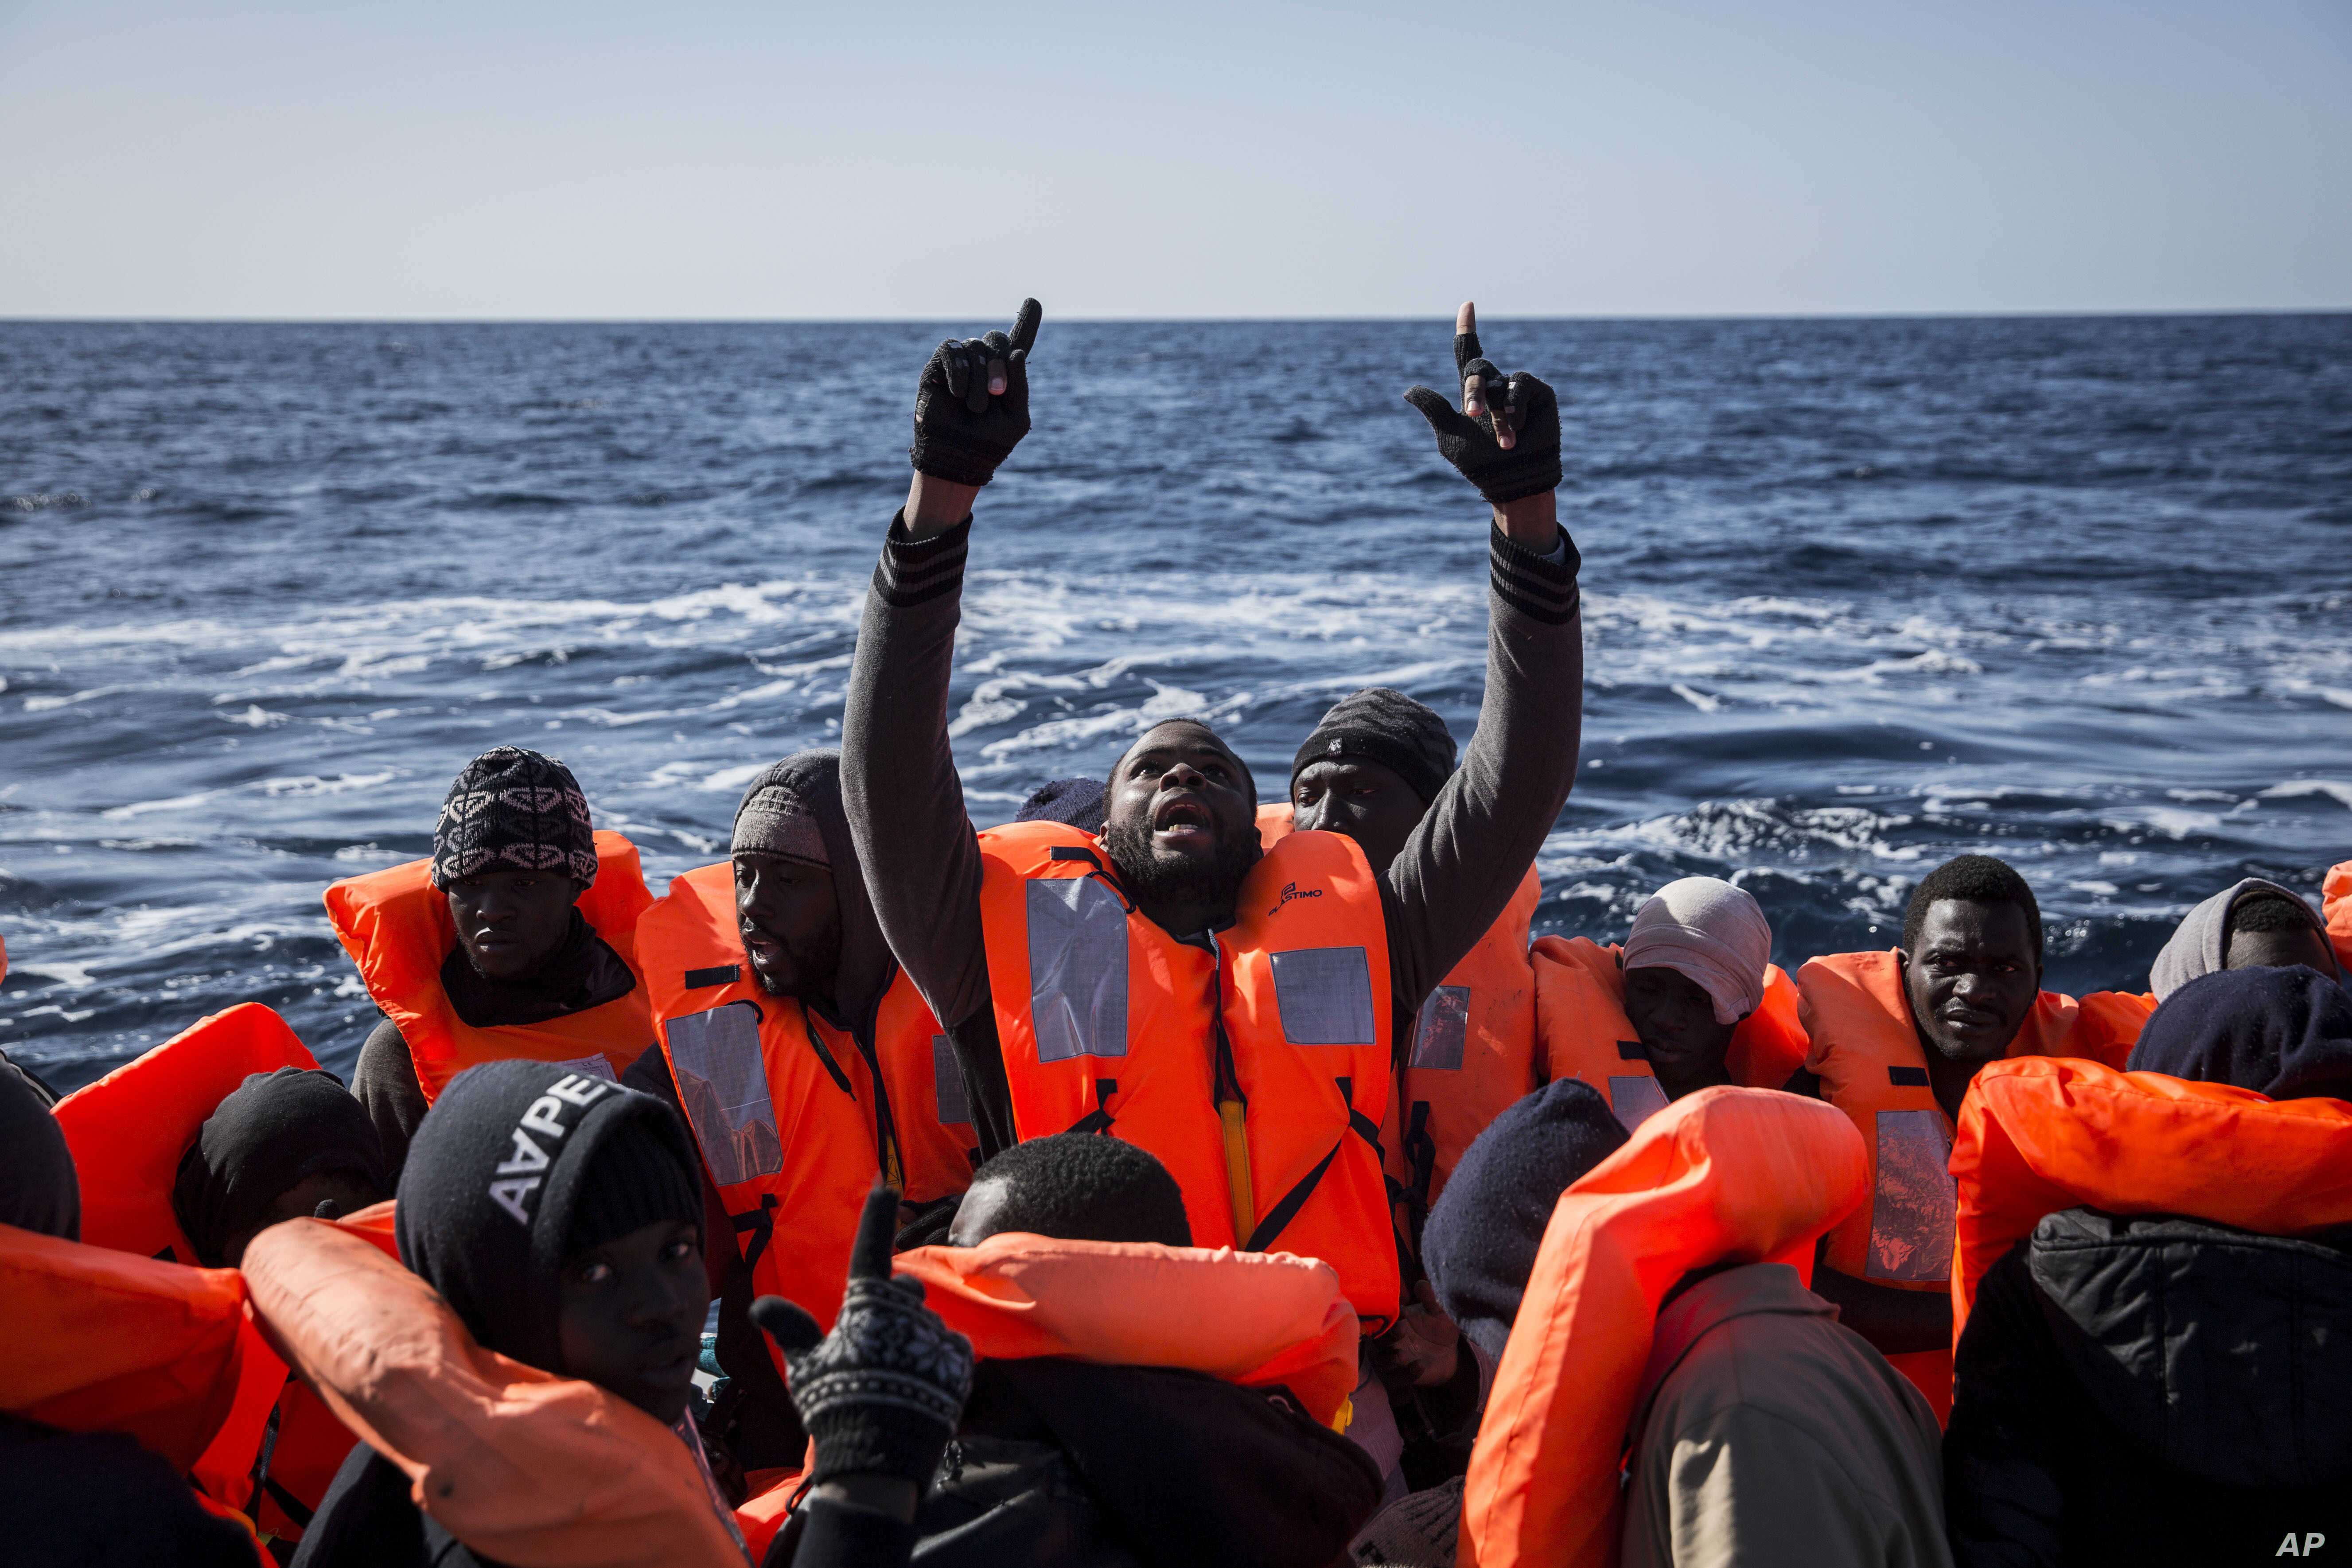 FILE - Sub-Saharan migrants are rescued by members of Proactiva Open Arms NGO at the Mediterranean sea, about 20 miles north of Ra's Tajura, Libya, Jan. 12, 2017. About 300 migrants were rescued Tuesday from three dinghies by members of Proactiva and...